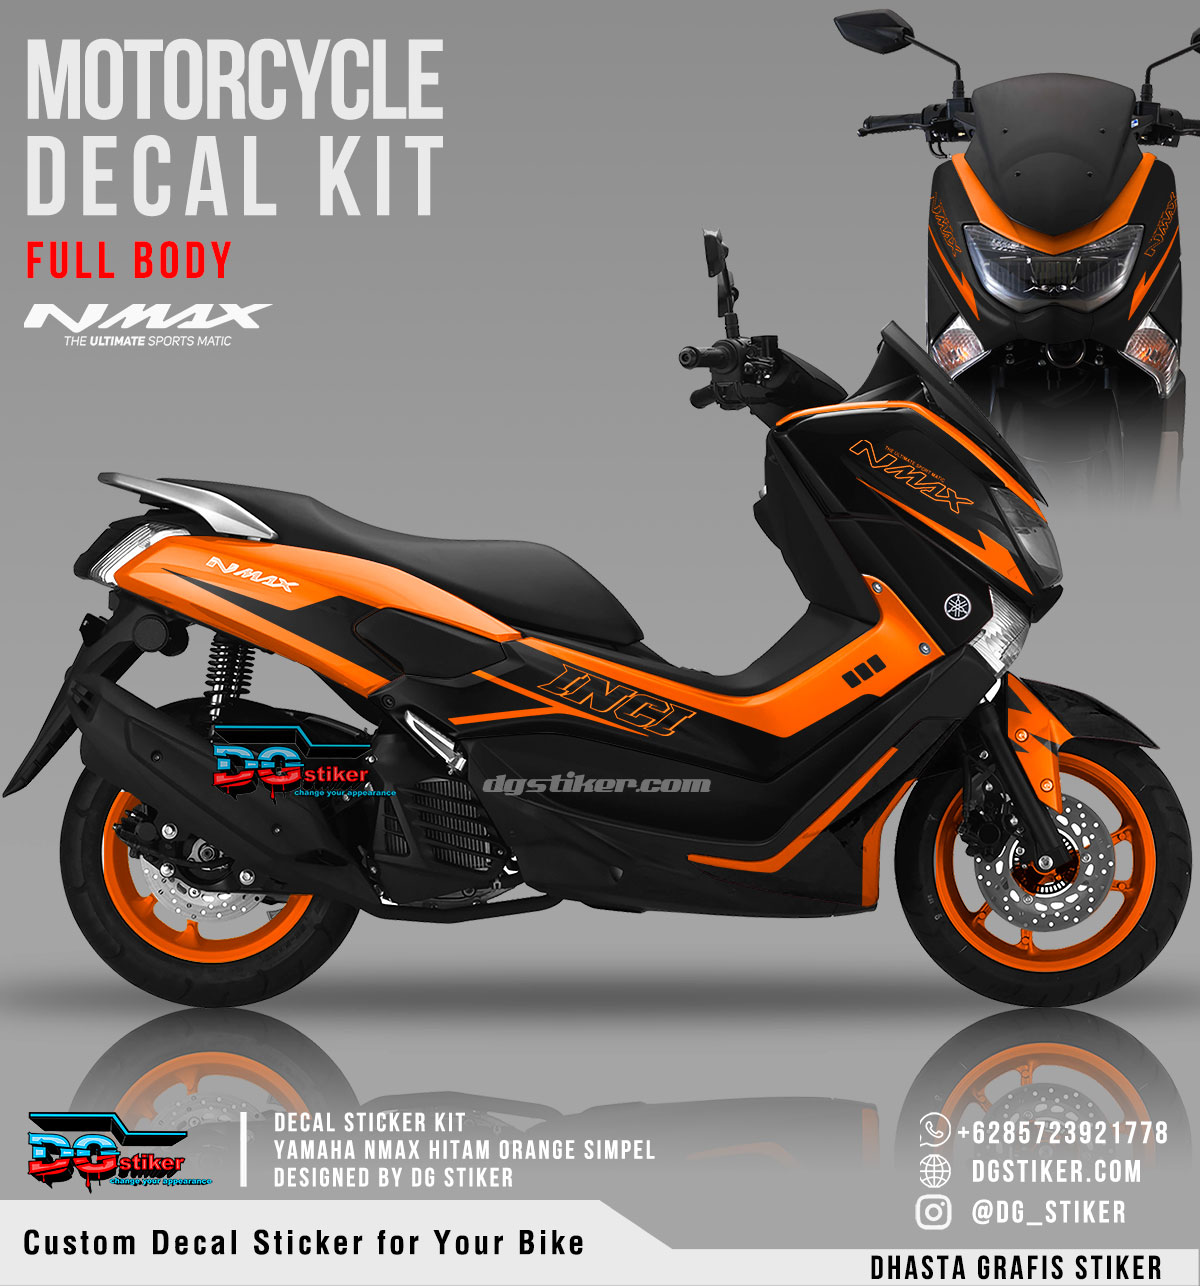 Decal Striping Nmax Hitam Orange Simpel DG Stiker